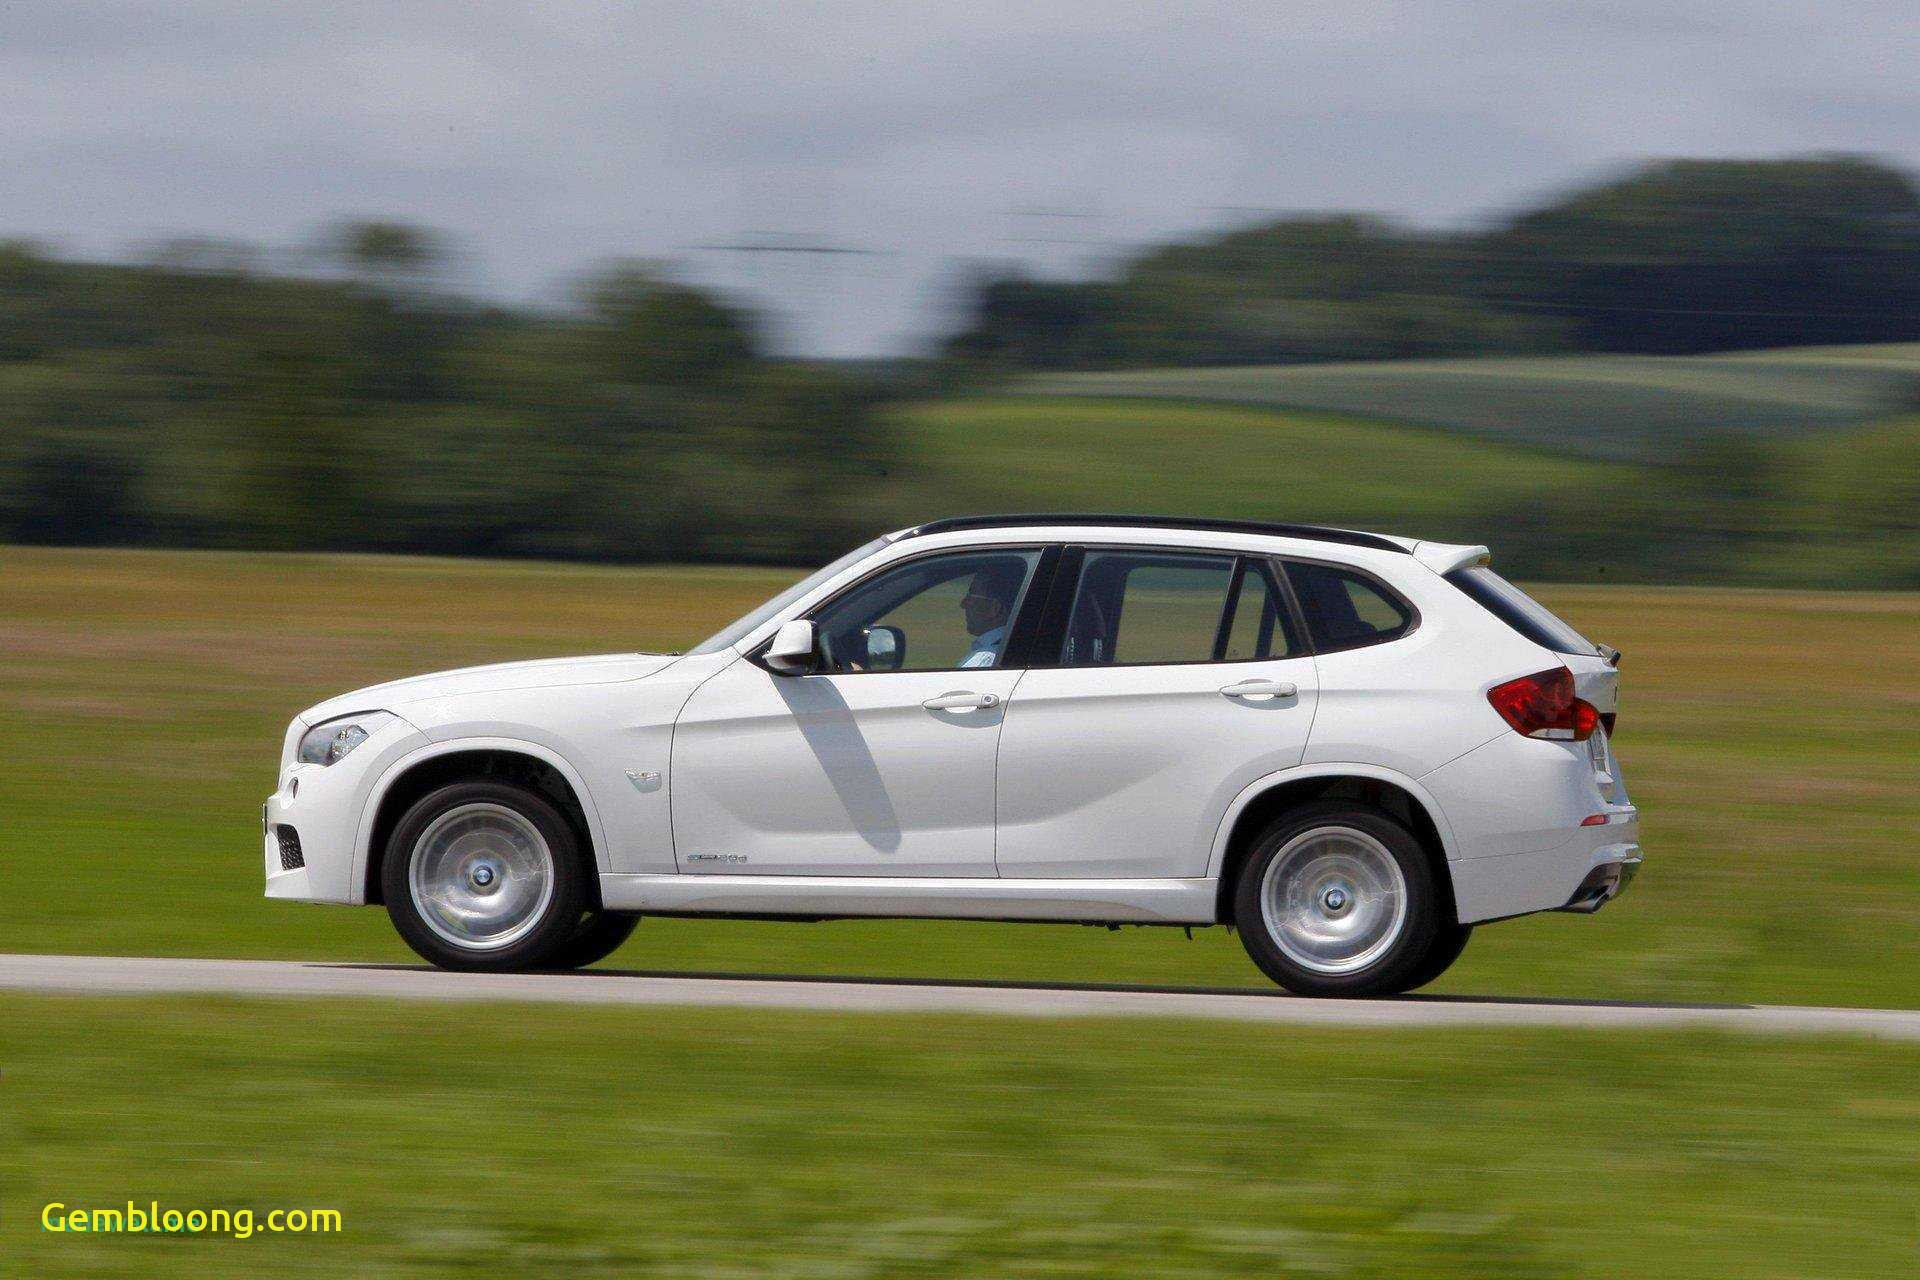 Used Car Reports Best Of iPhone Car Hd Wallpapers New Cars Used Reviews and Bmw X1